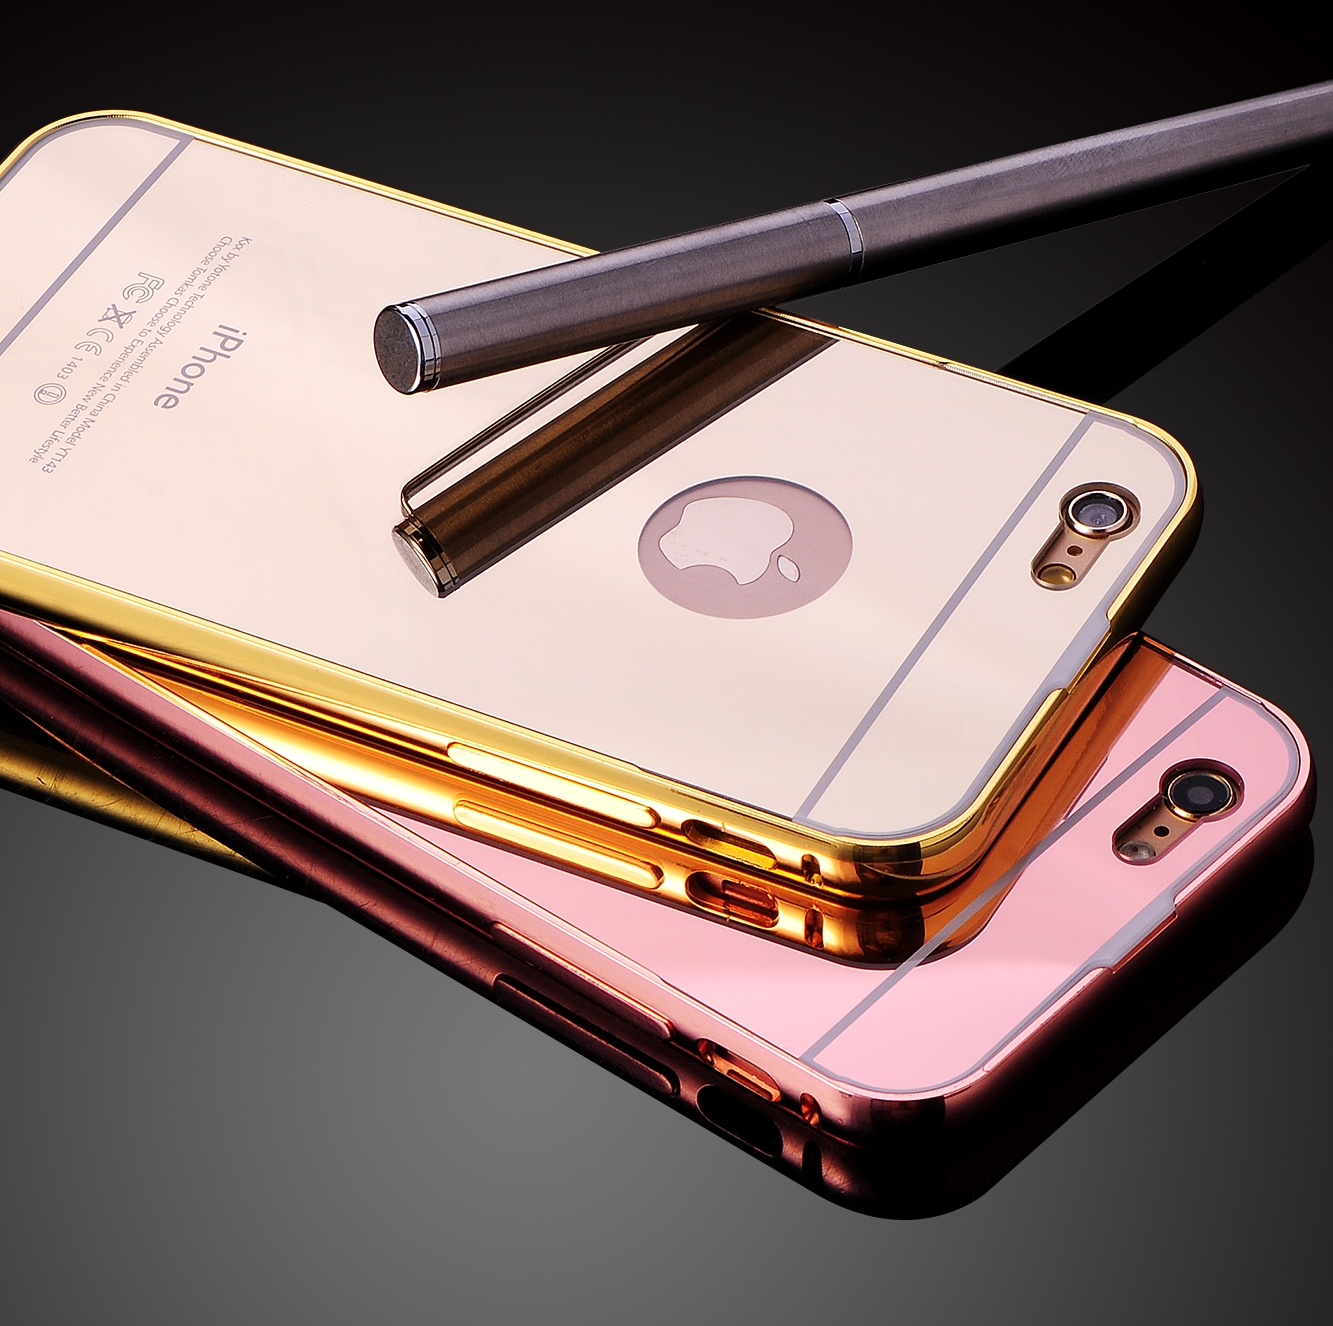 Luxury mobile phone shell apple iPhone6splus mirror mobile phone sets plus metal frame protective sleeve cover